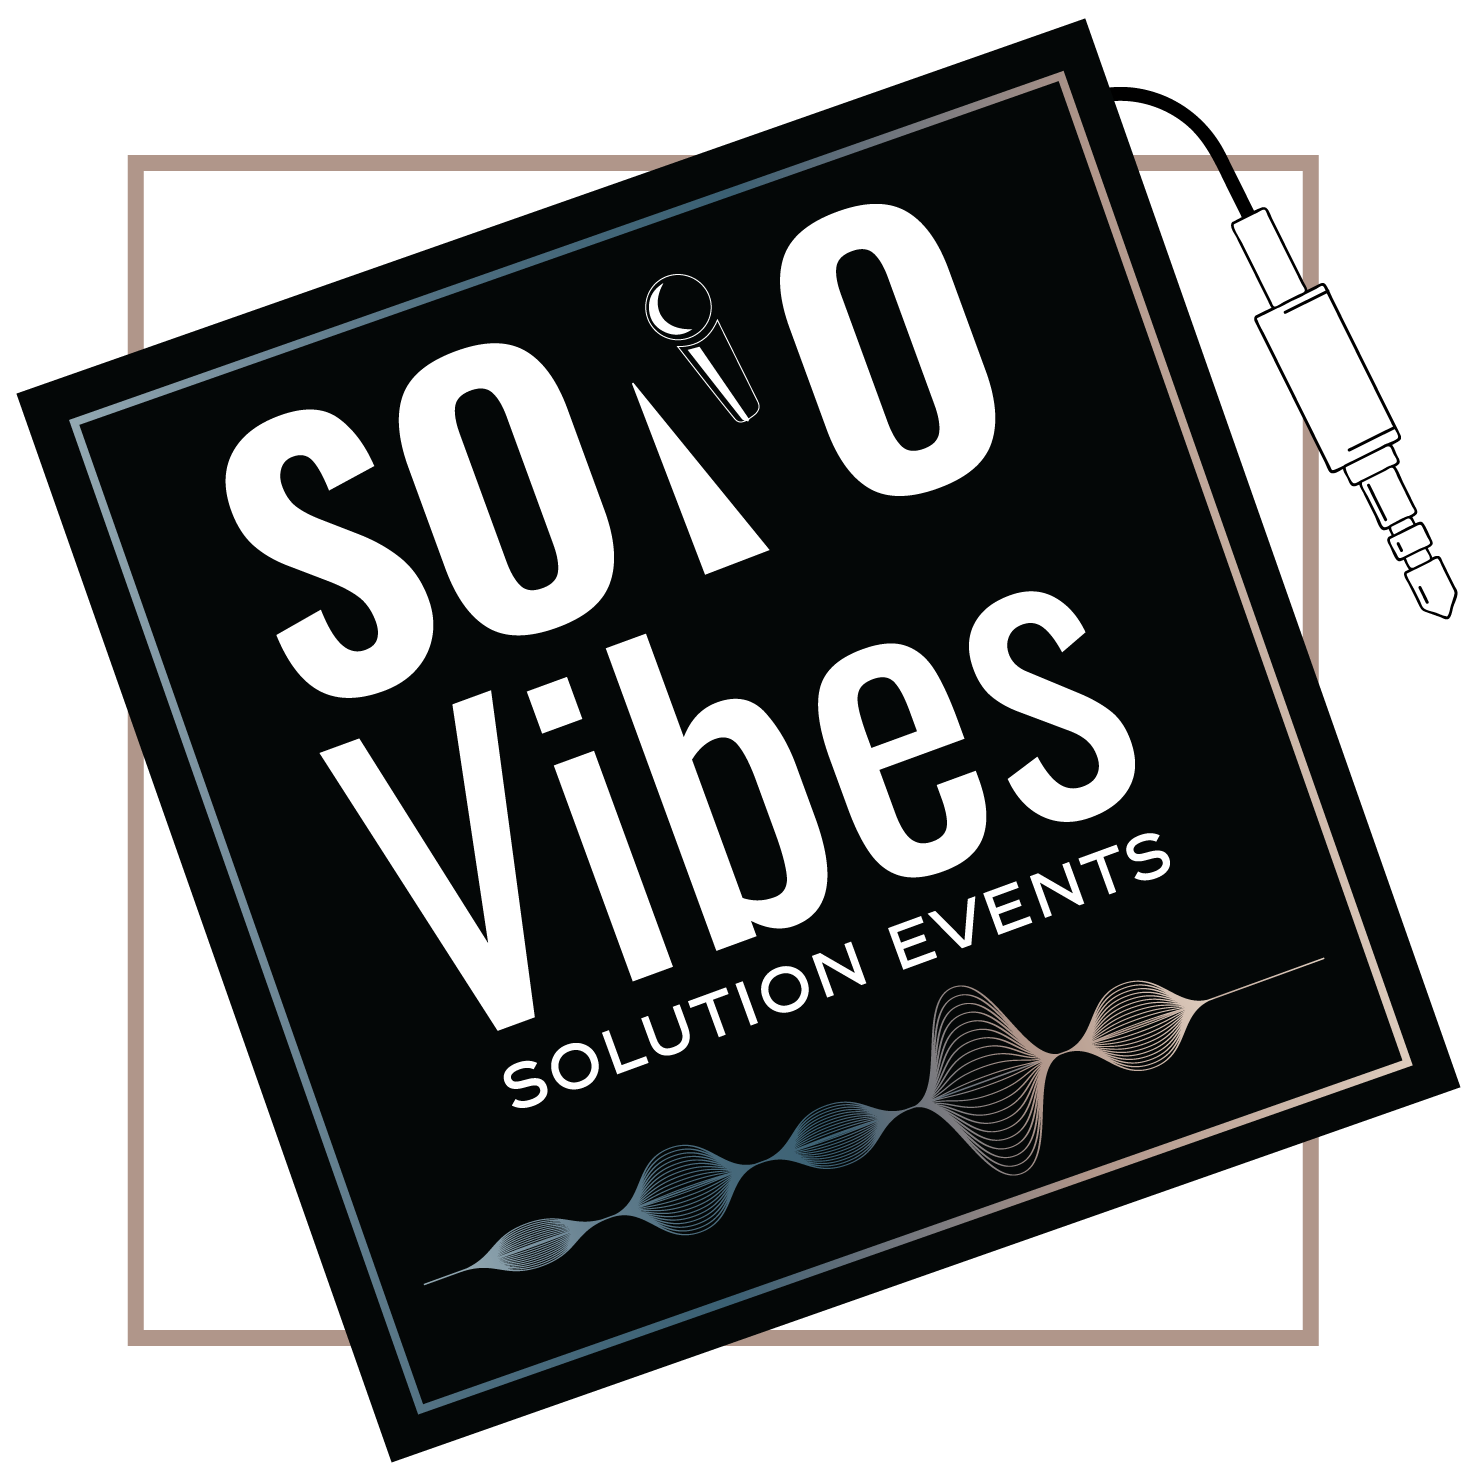 Sonovibes Solution Events